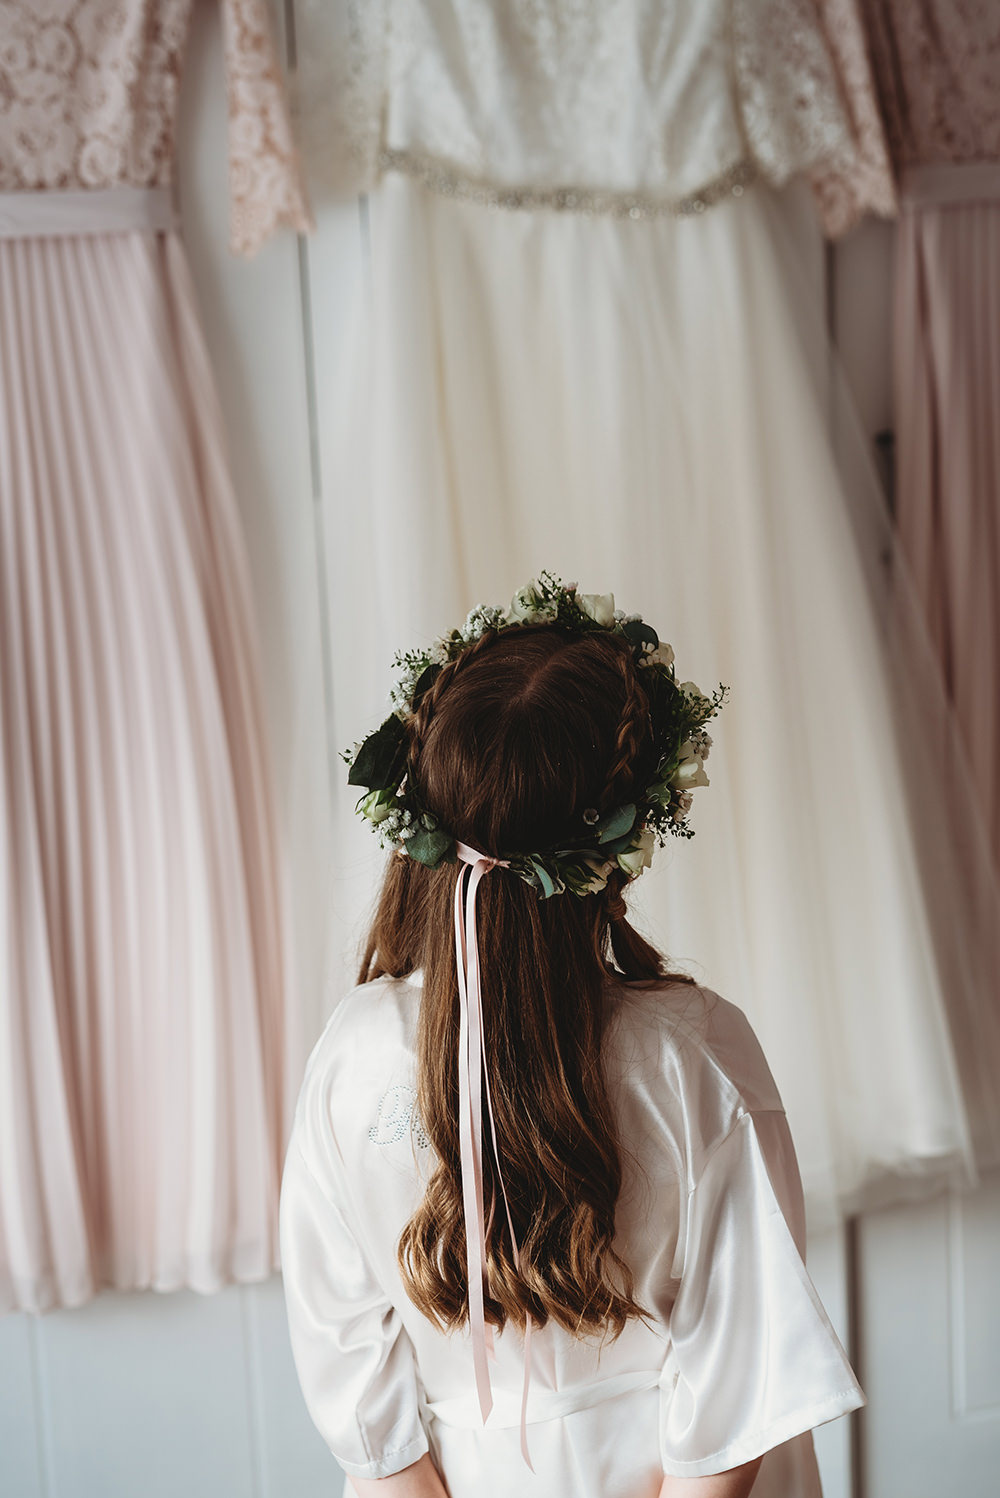 Flower Girl Flower Crown Hair Whinstone View Wedding Emma Adamson Photography